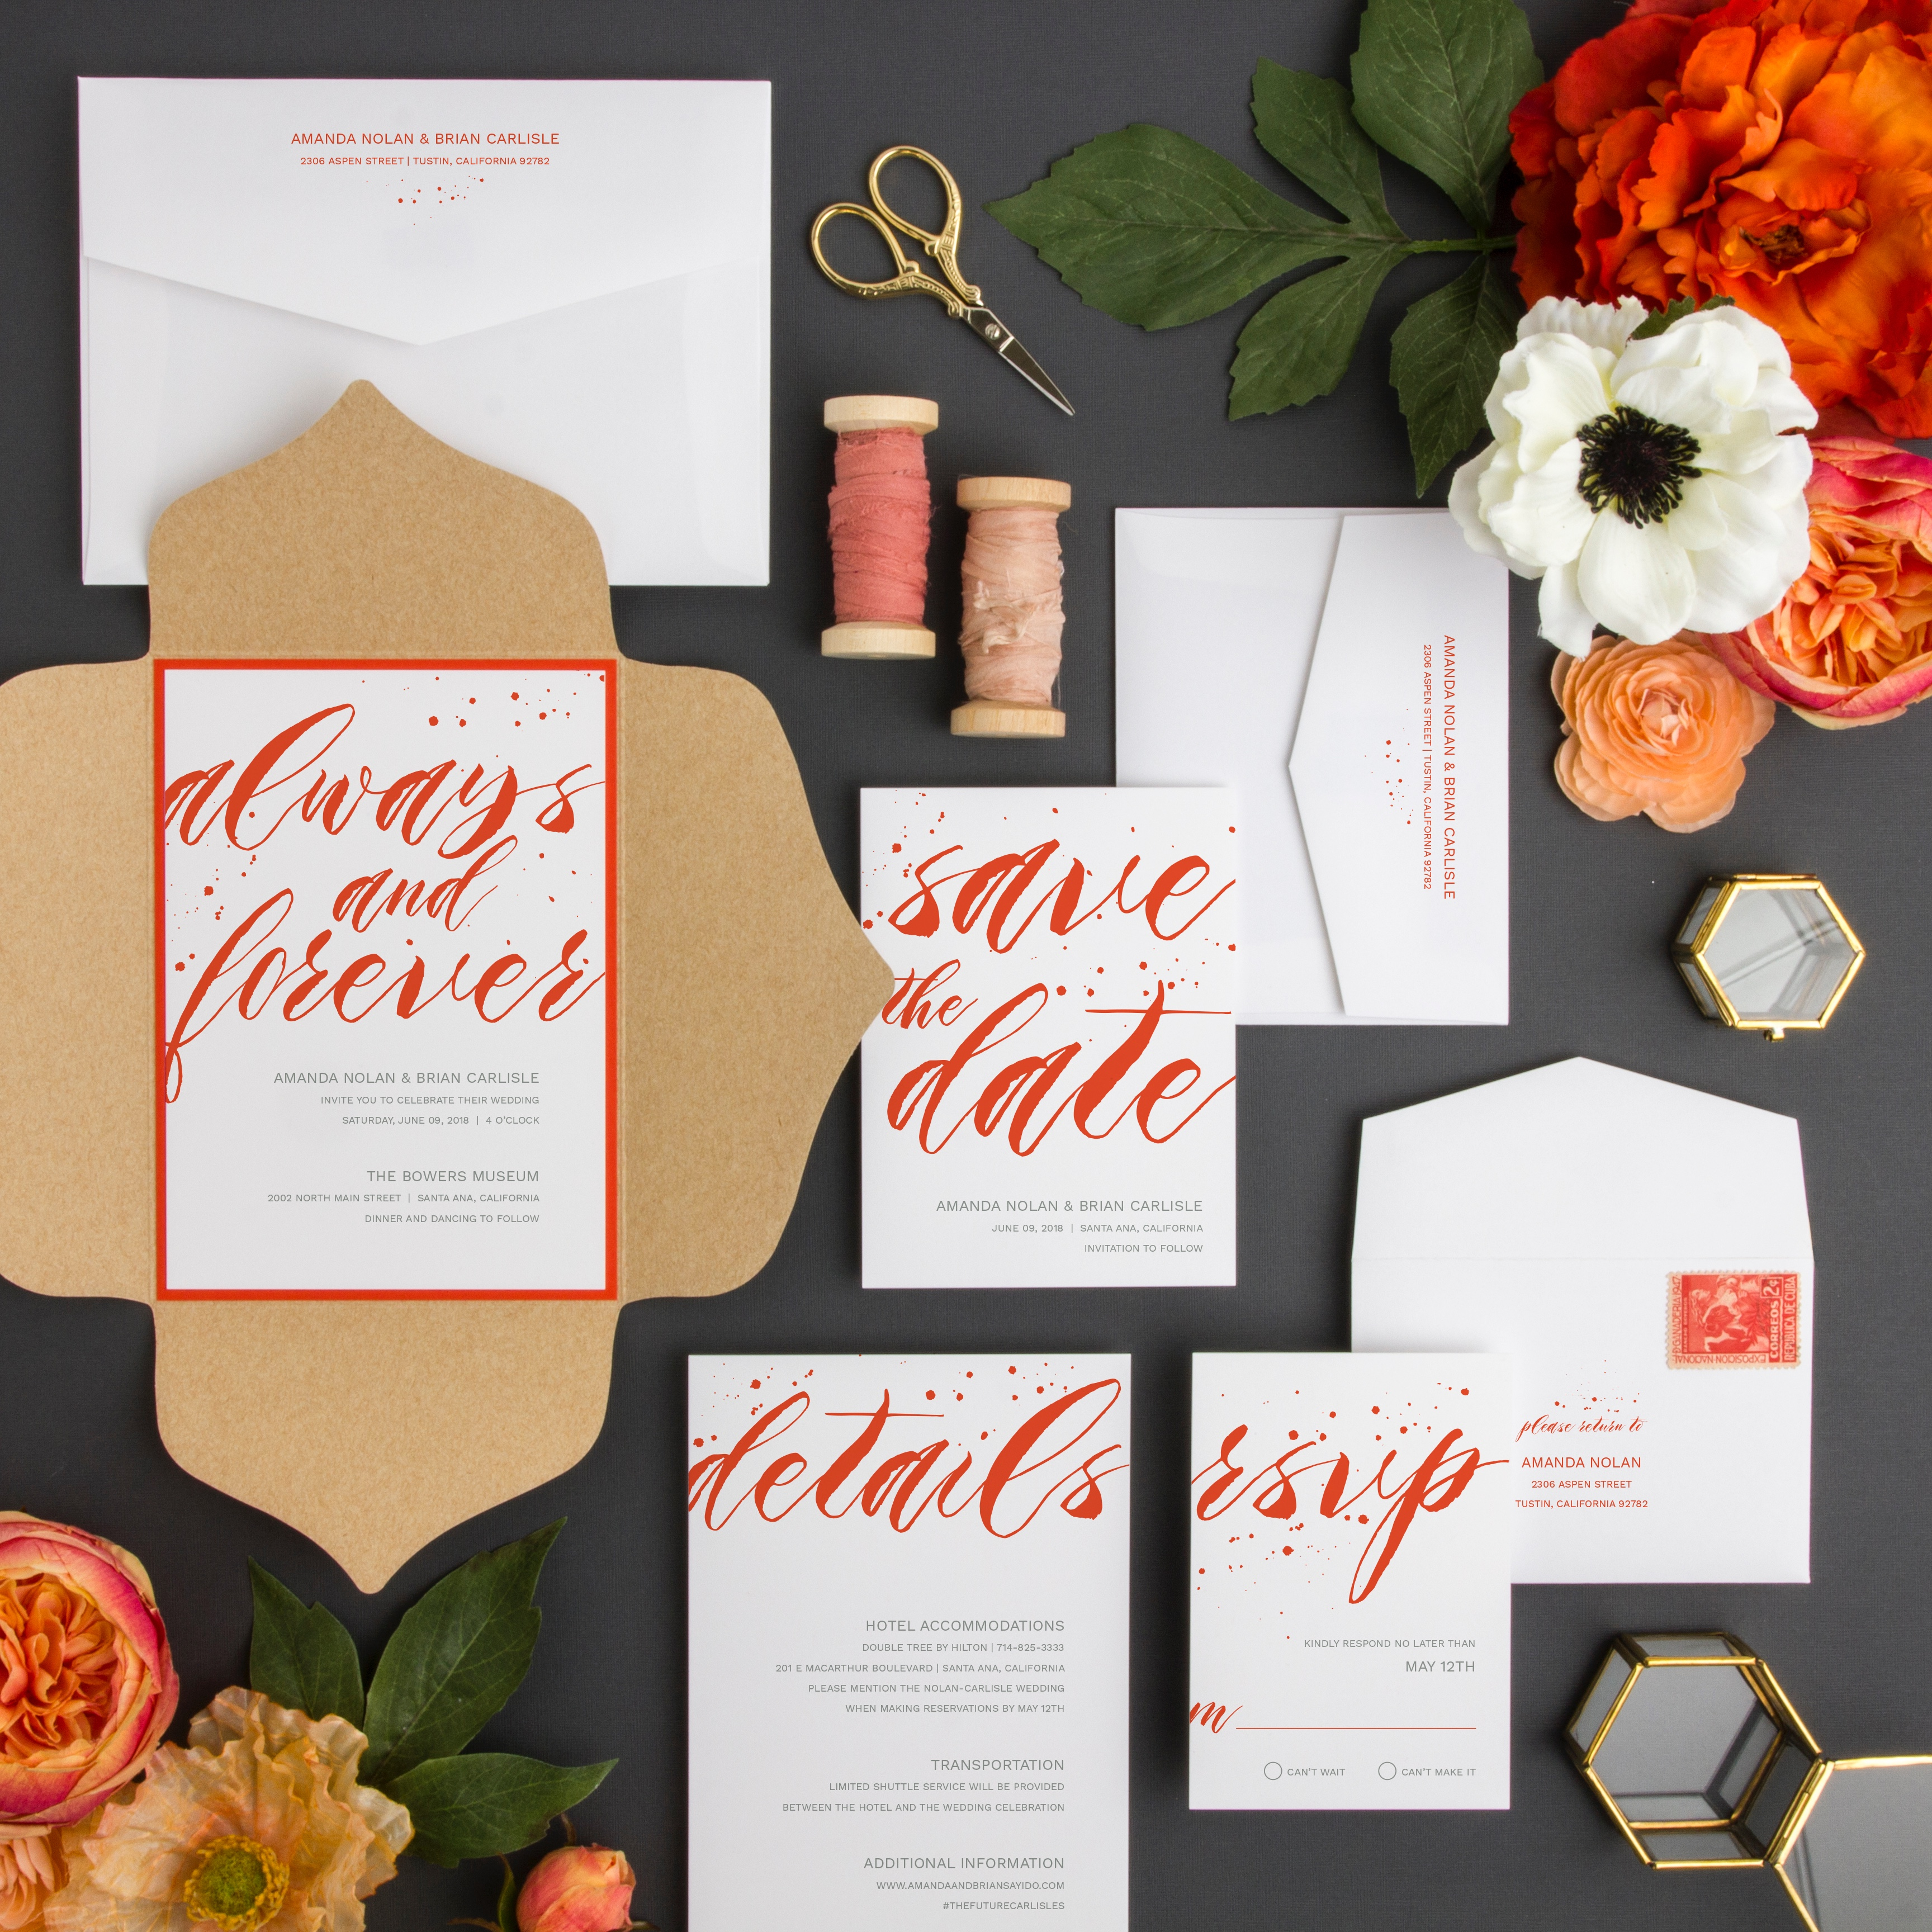 Always and Forever wedding invitation is a bold and dramatic introduction to your big day.  Featured here in a petal fold enclosure and bright orange.